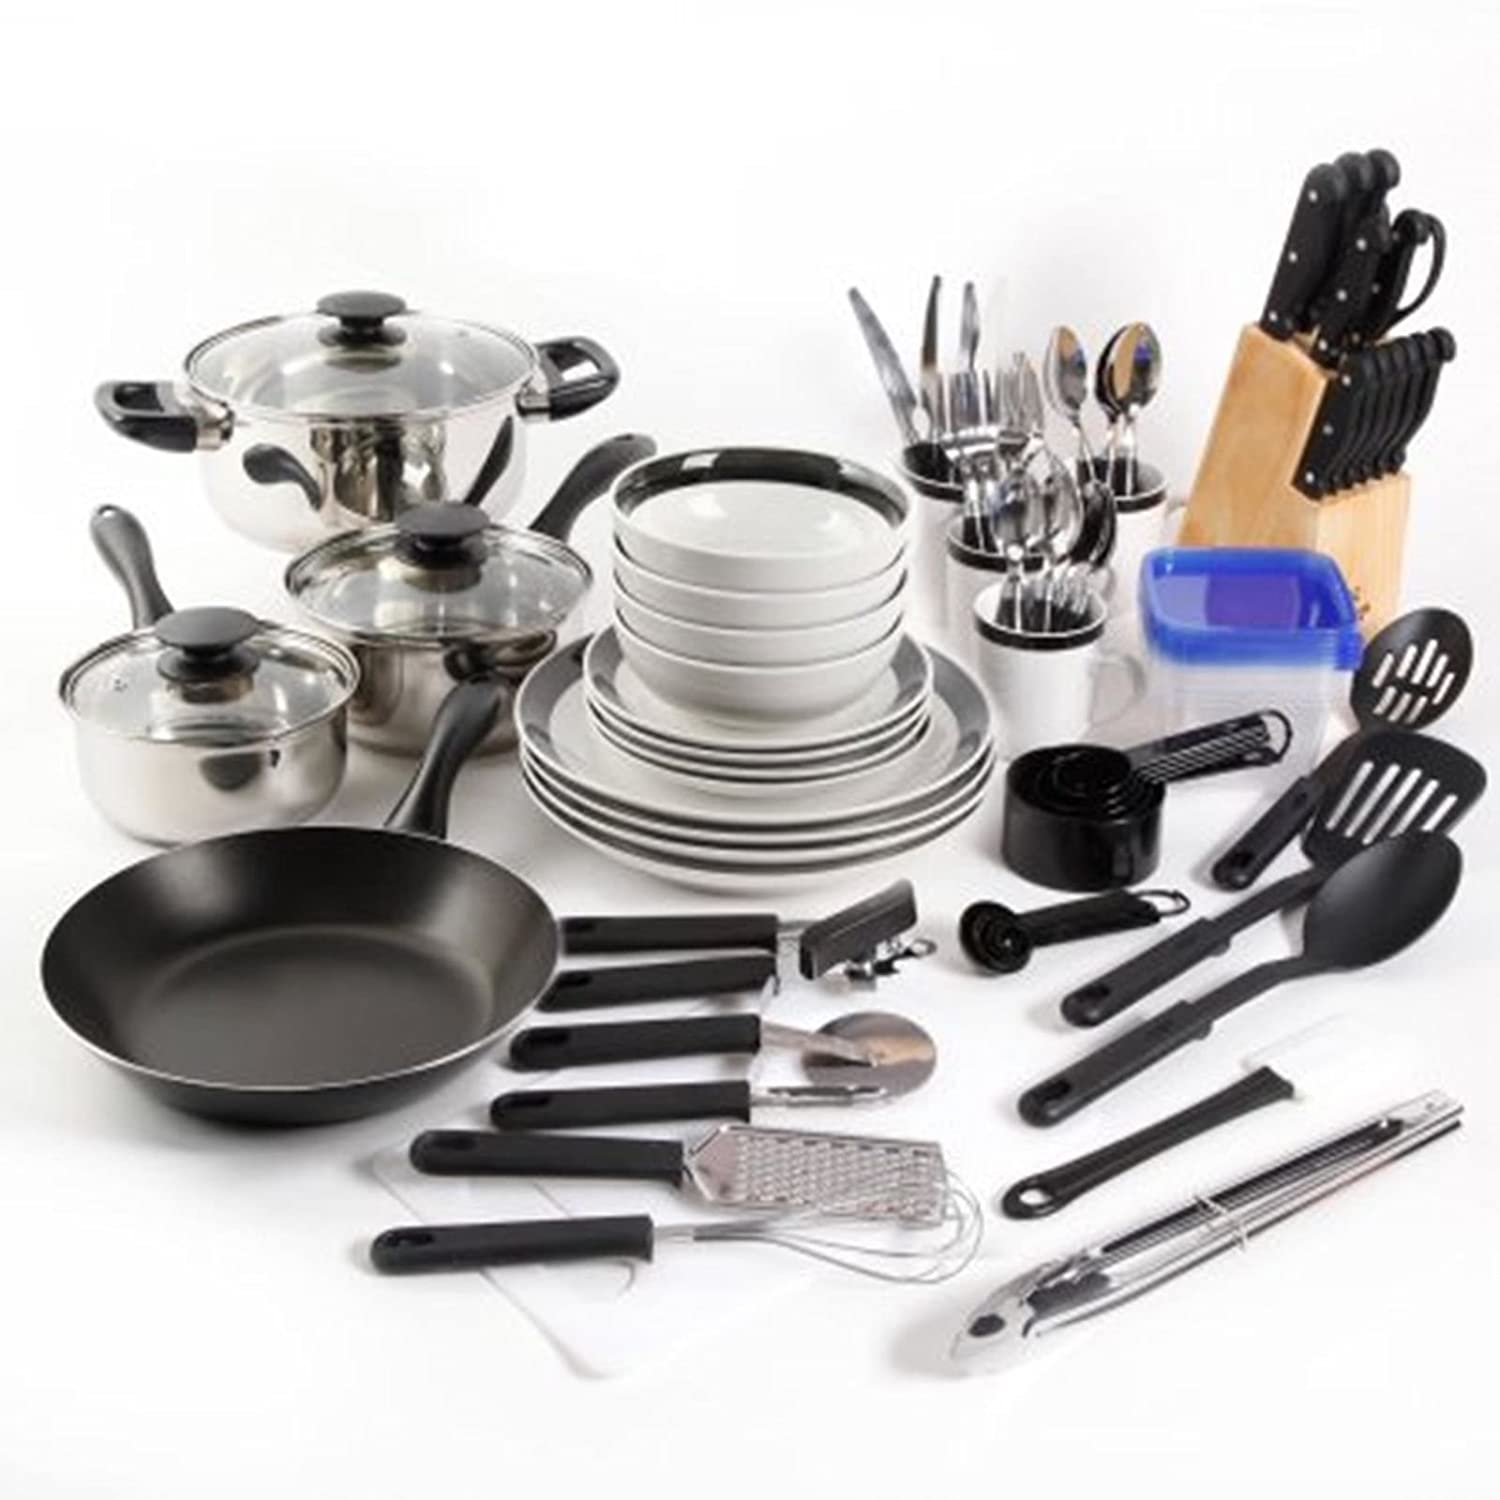 Kitchen Set For Home